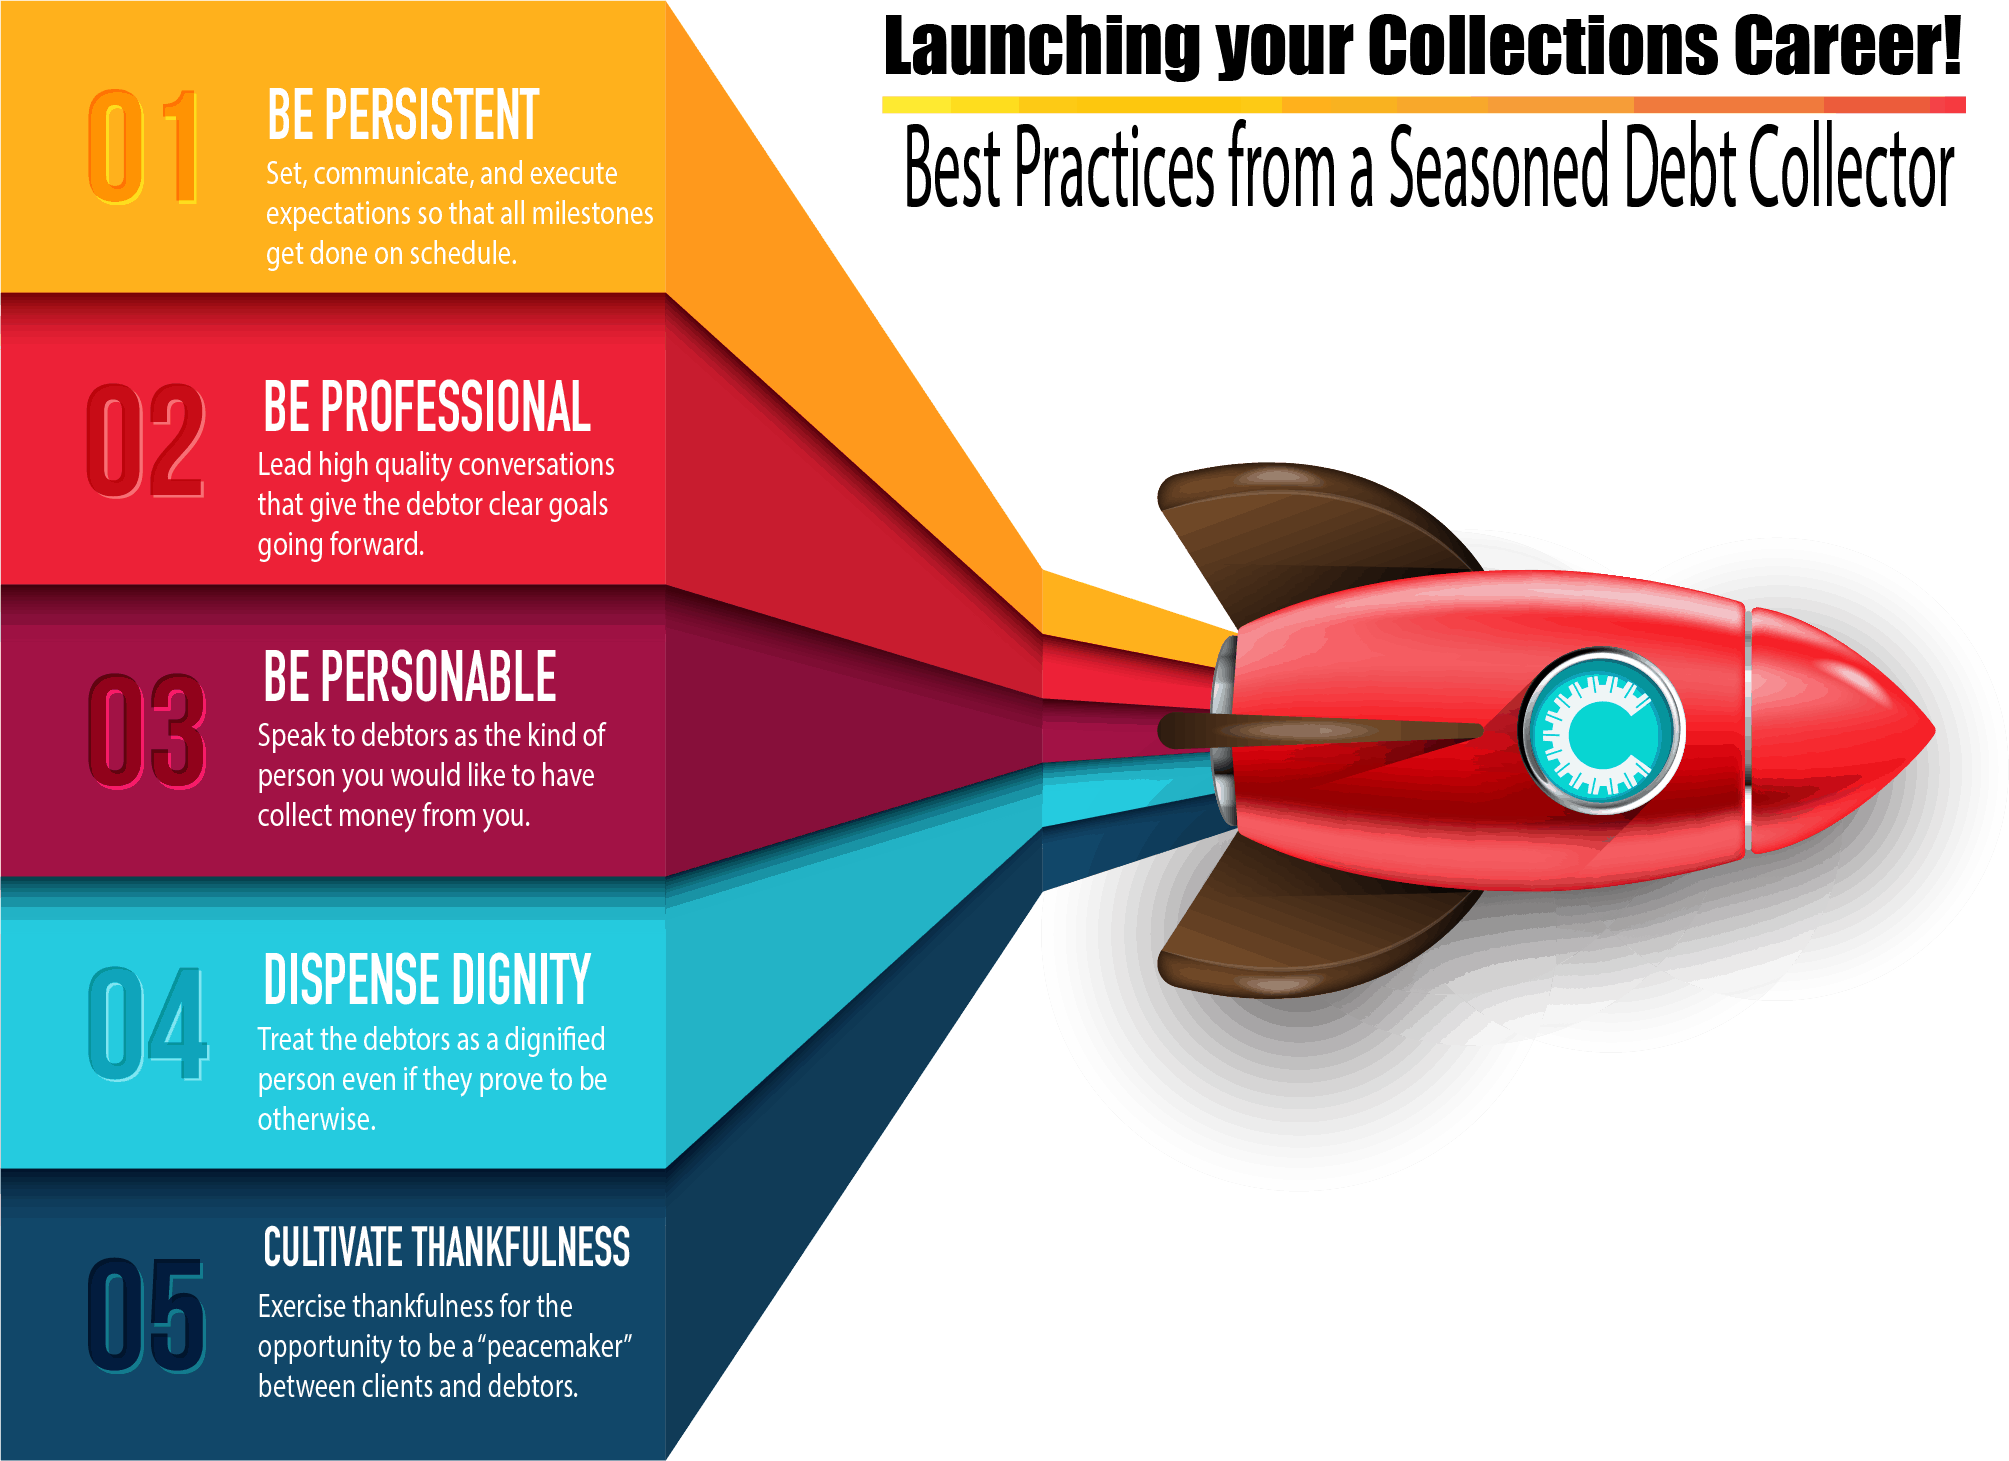 Launching Your Collections Career | Cornerstone Support